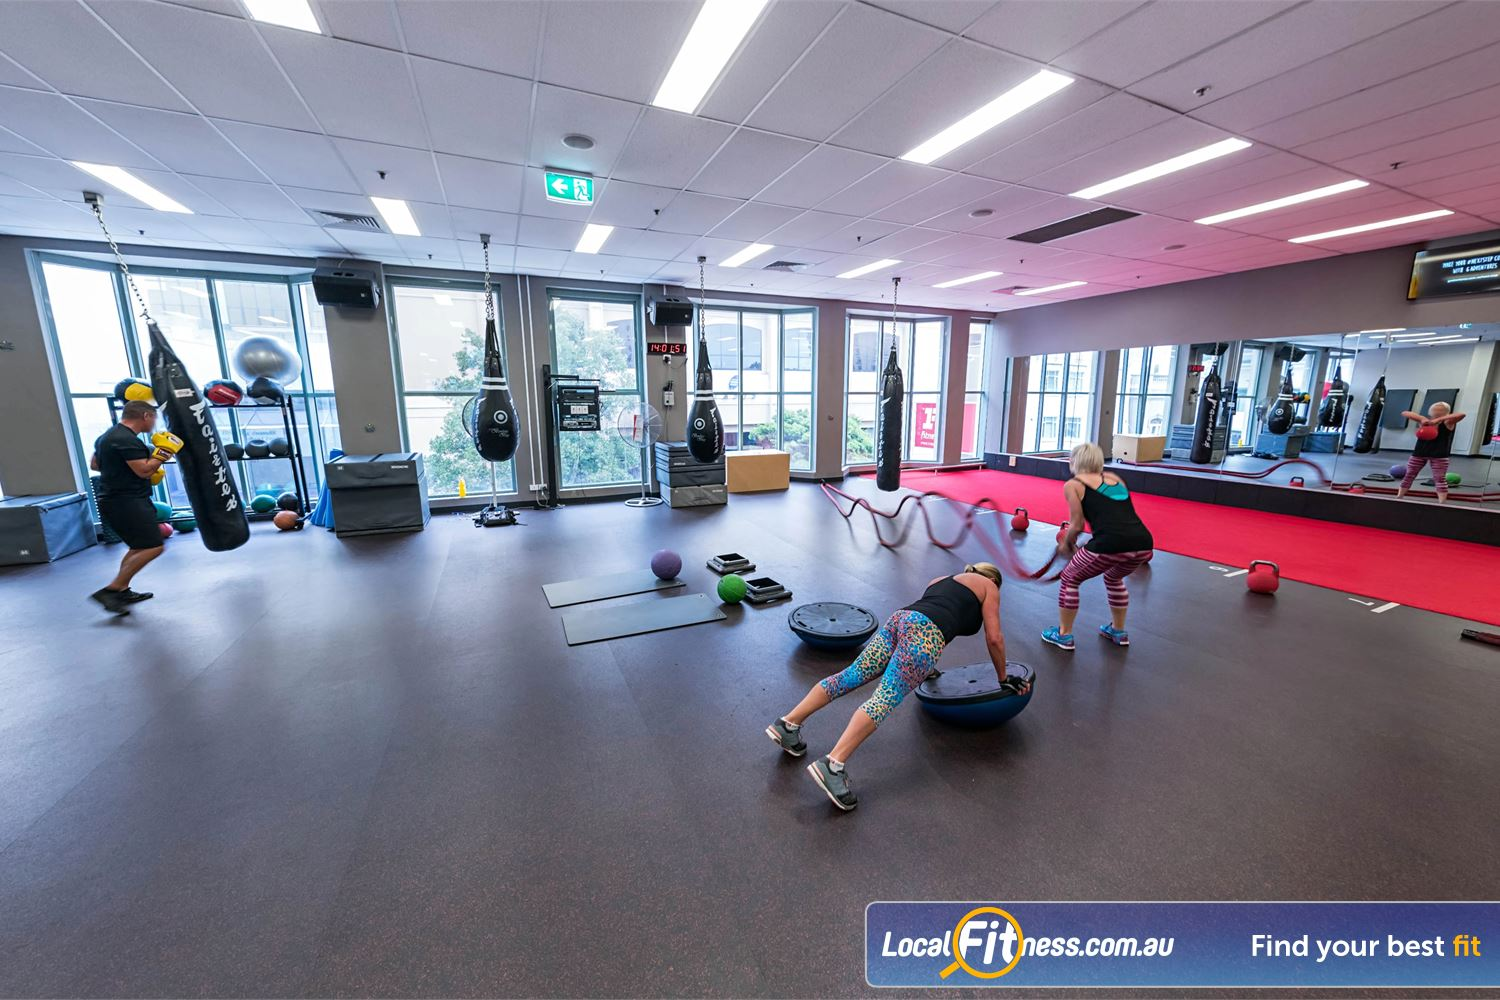 Fitness First Platinum Spring St Near Bellevue Hill The top level freestyle area includes battle ropes, indoor sled track, heavy boxing bags and more.